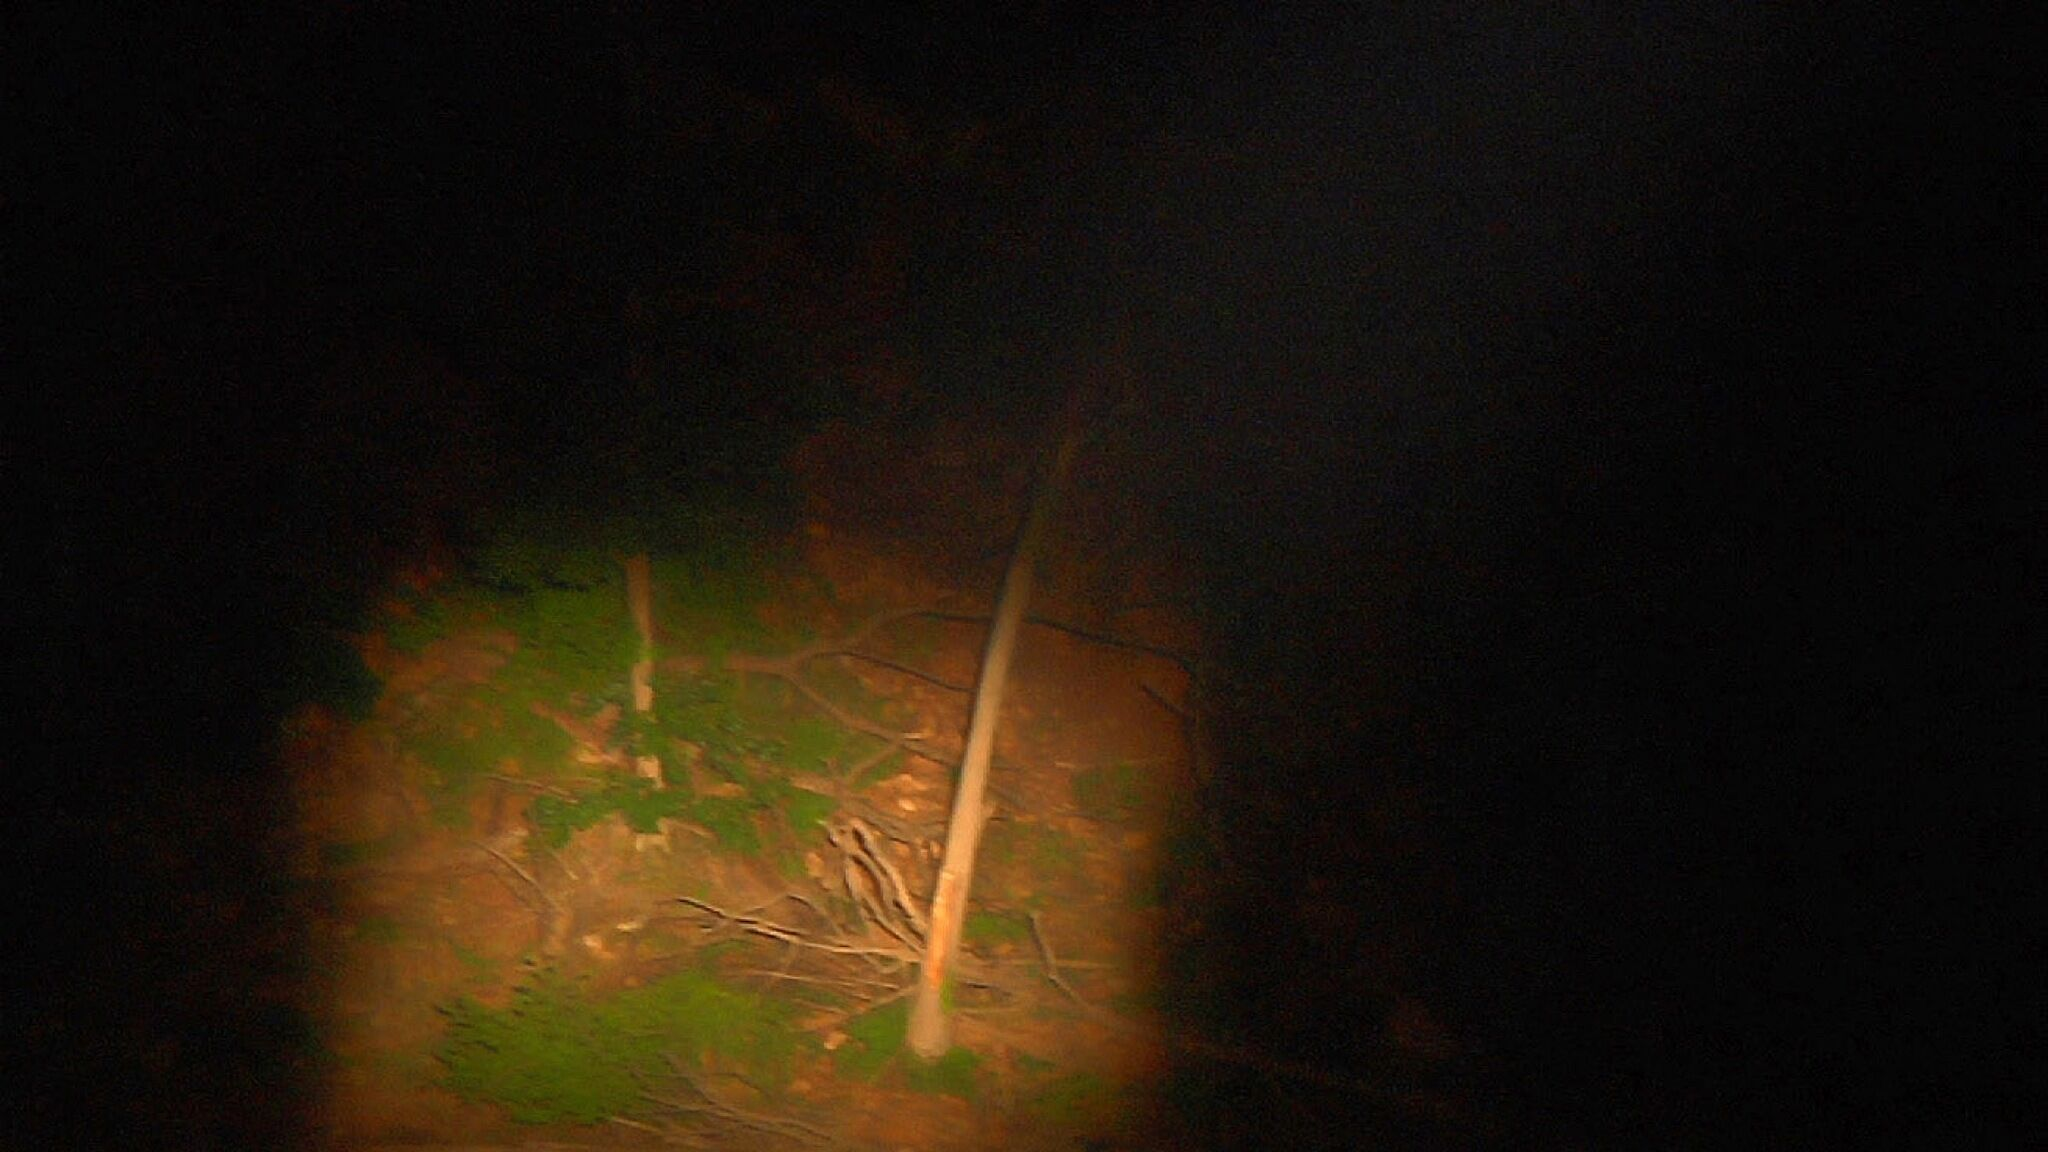 A video still of a dark night.